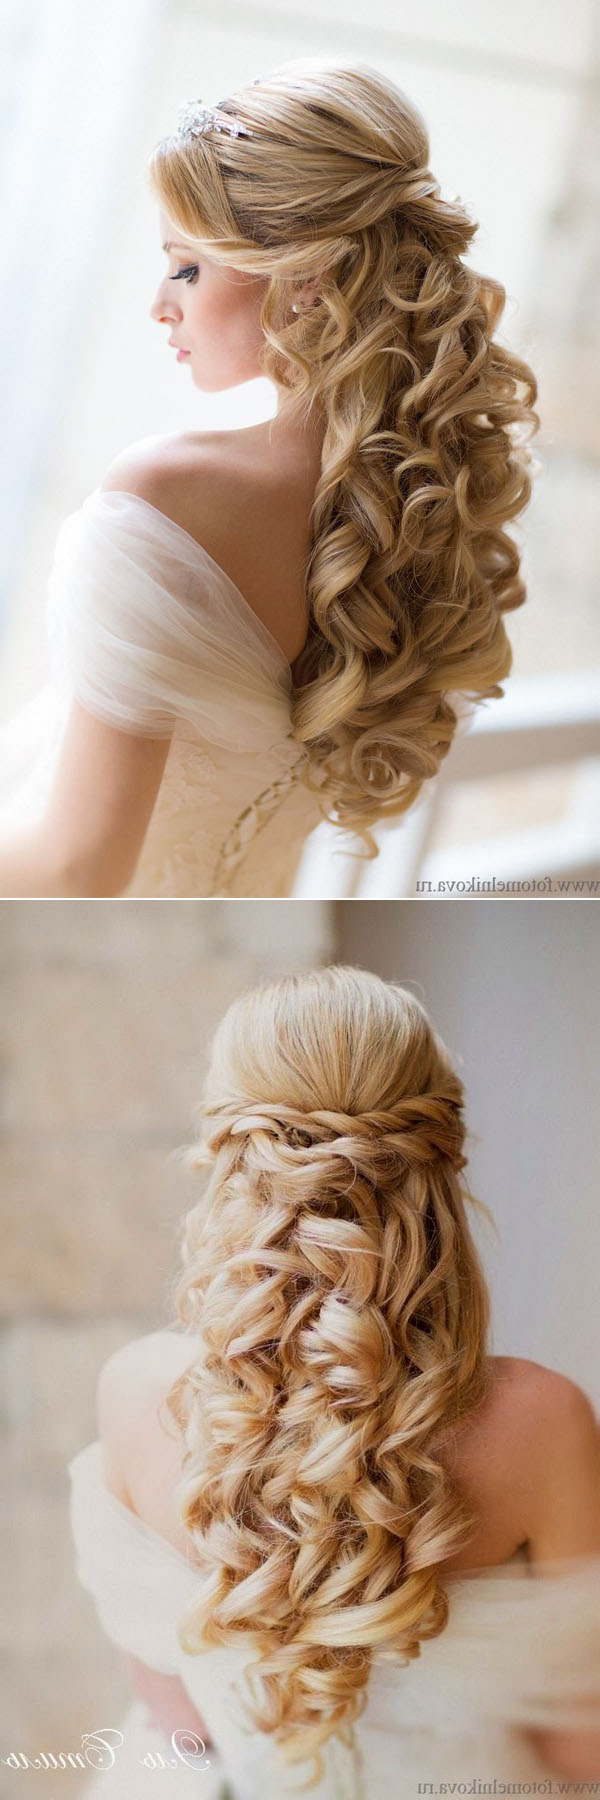 Most Recent Half Up Wedding Hairstyles With Jeweled Clip Pertaining To 20 Awesome Half Up Half Down Wedding Hairstyle Ideas (View 8 of 20)